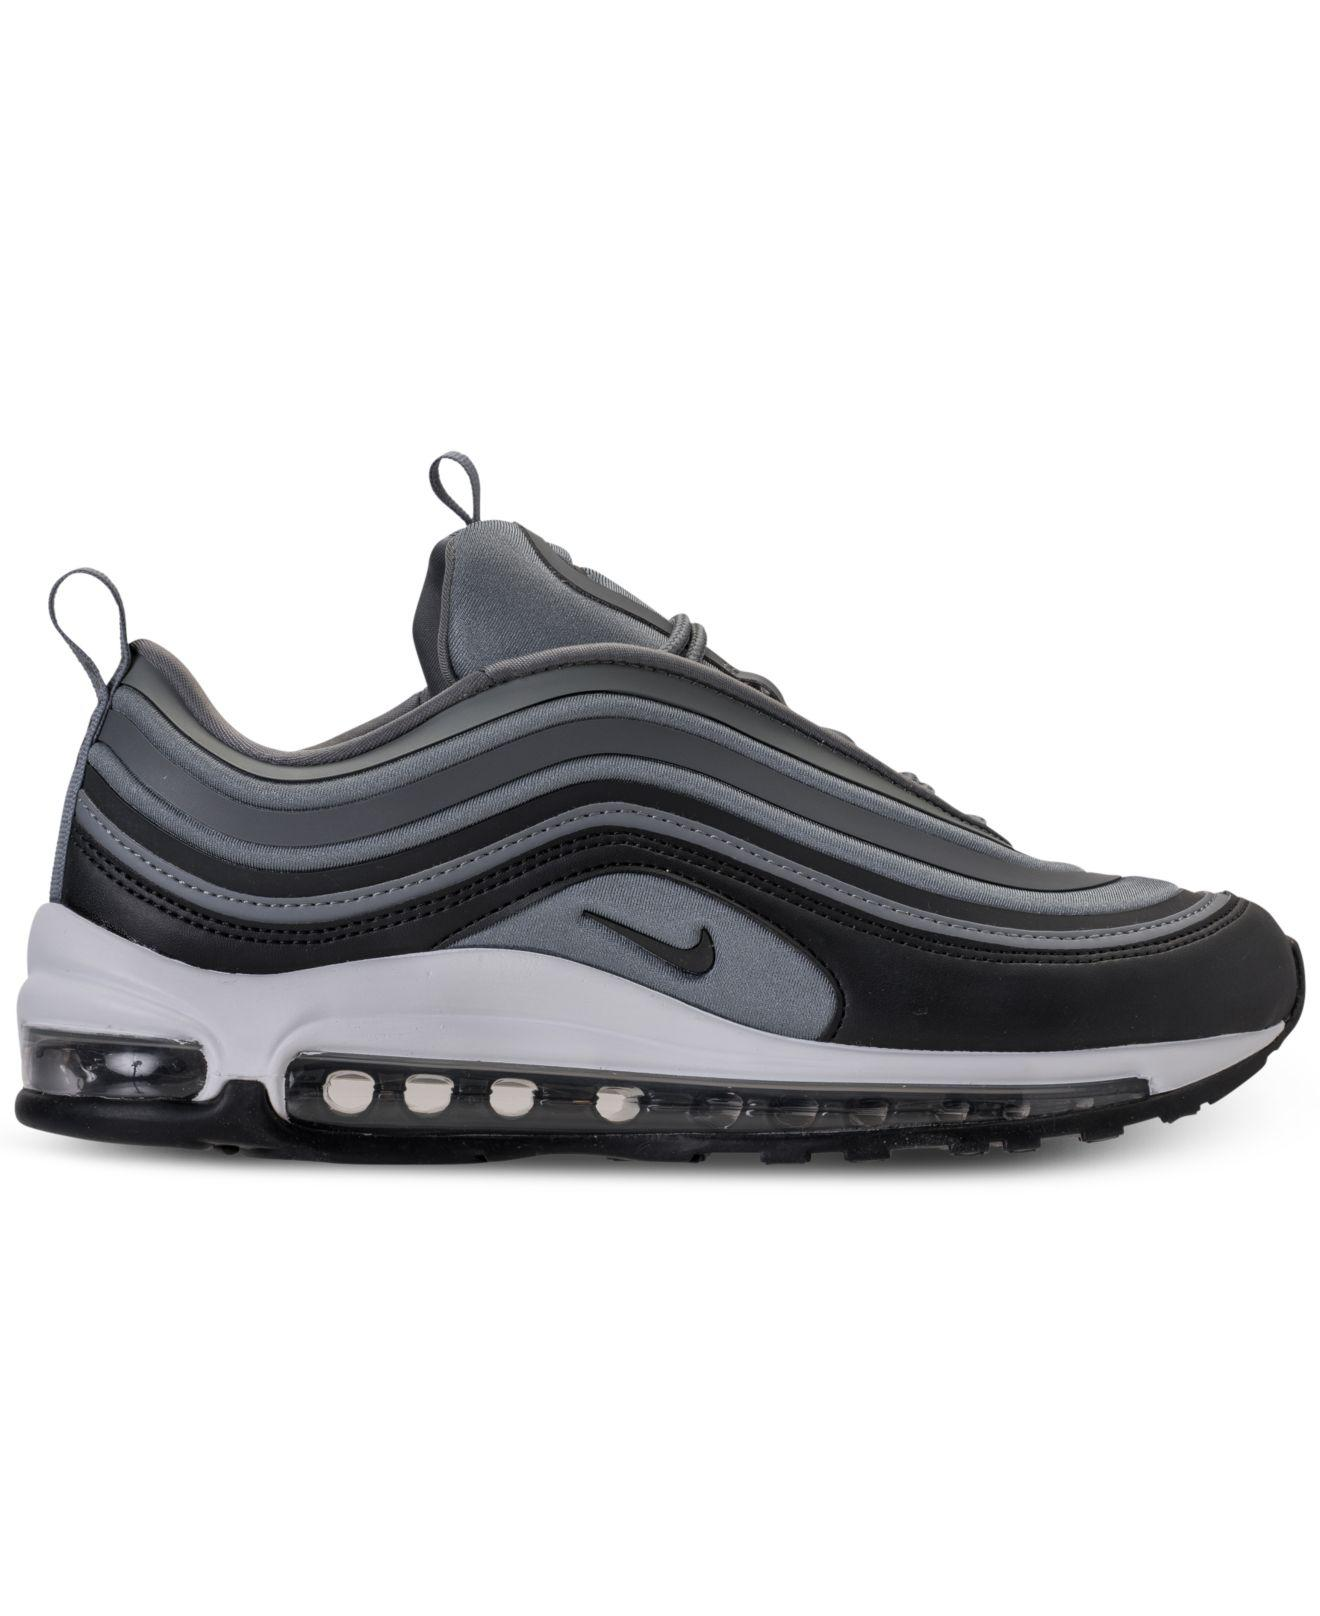 ... new style lyst nike air max 97 ul 17 casual sneakers from finish line  in gray 86e610597